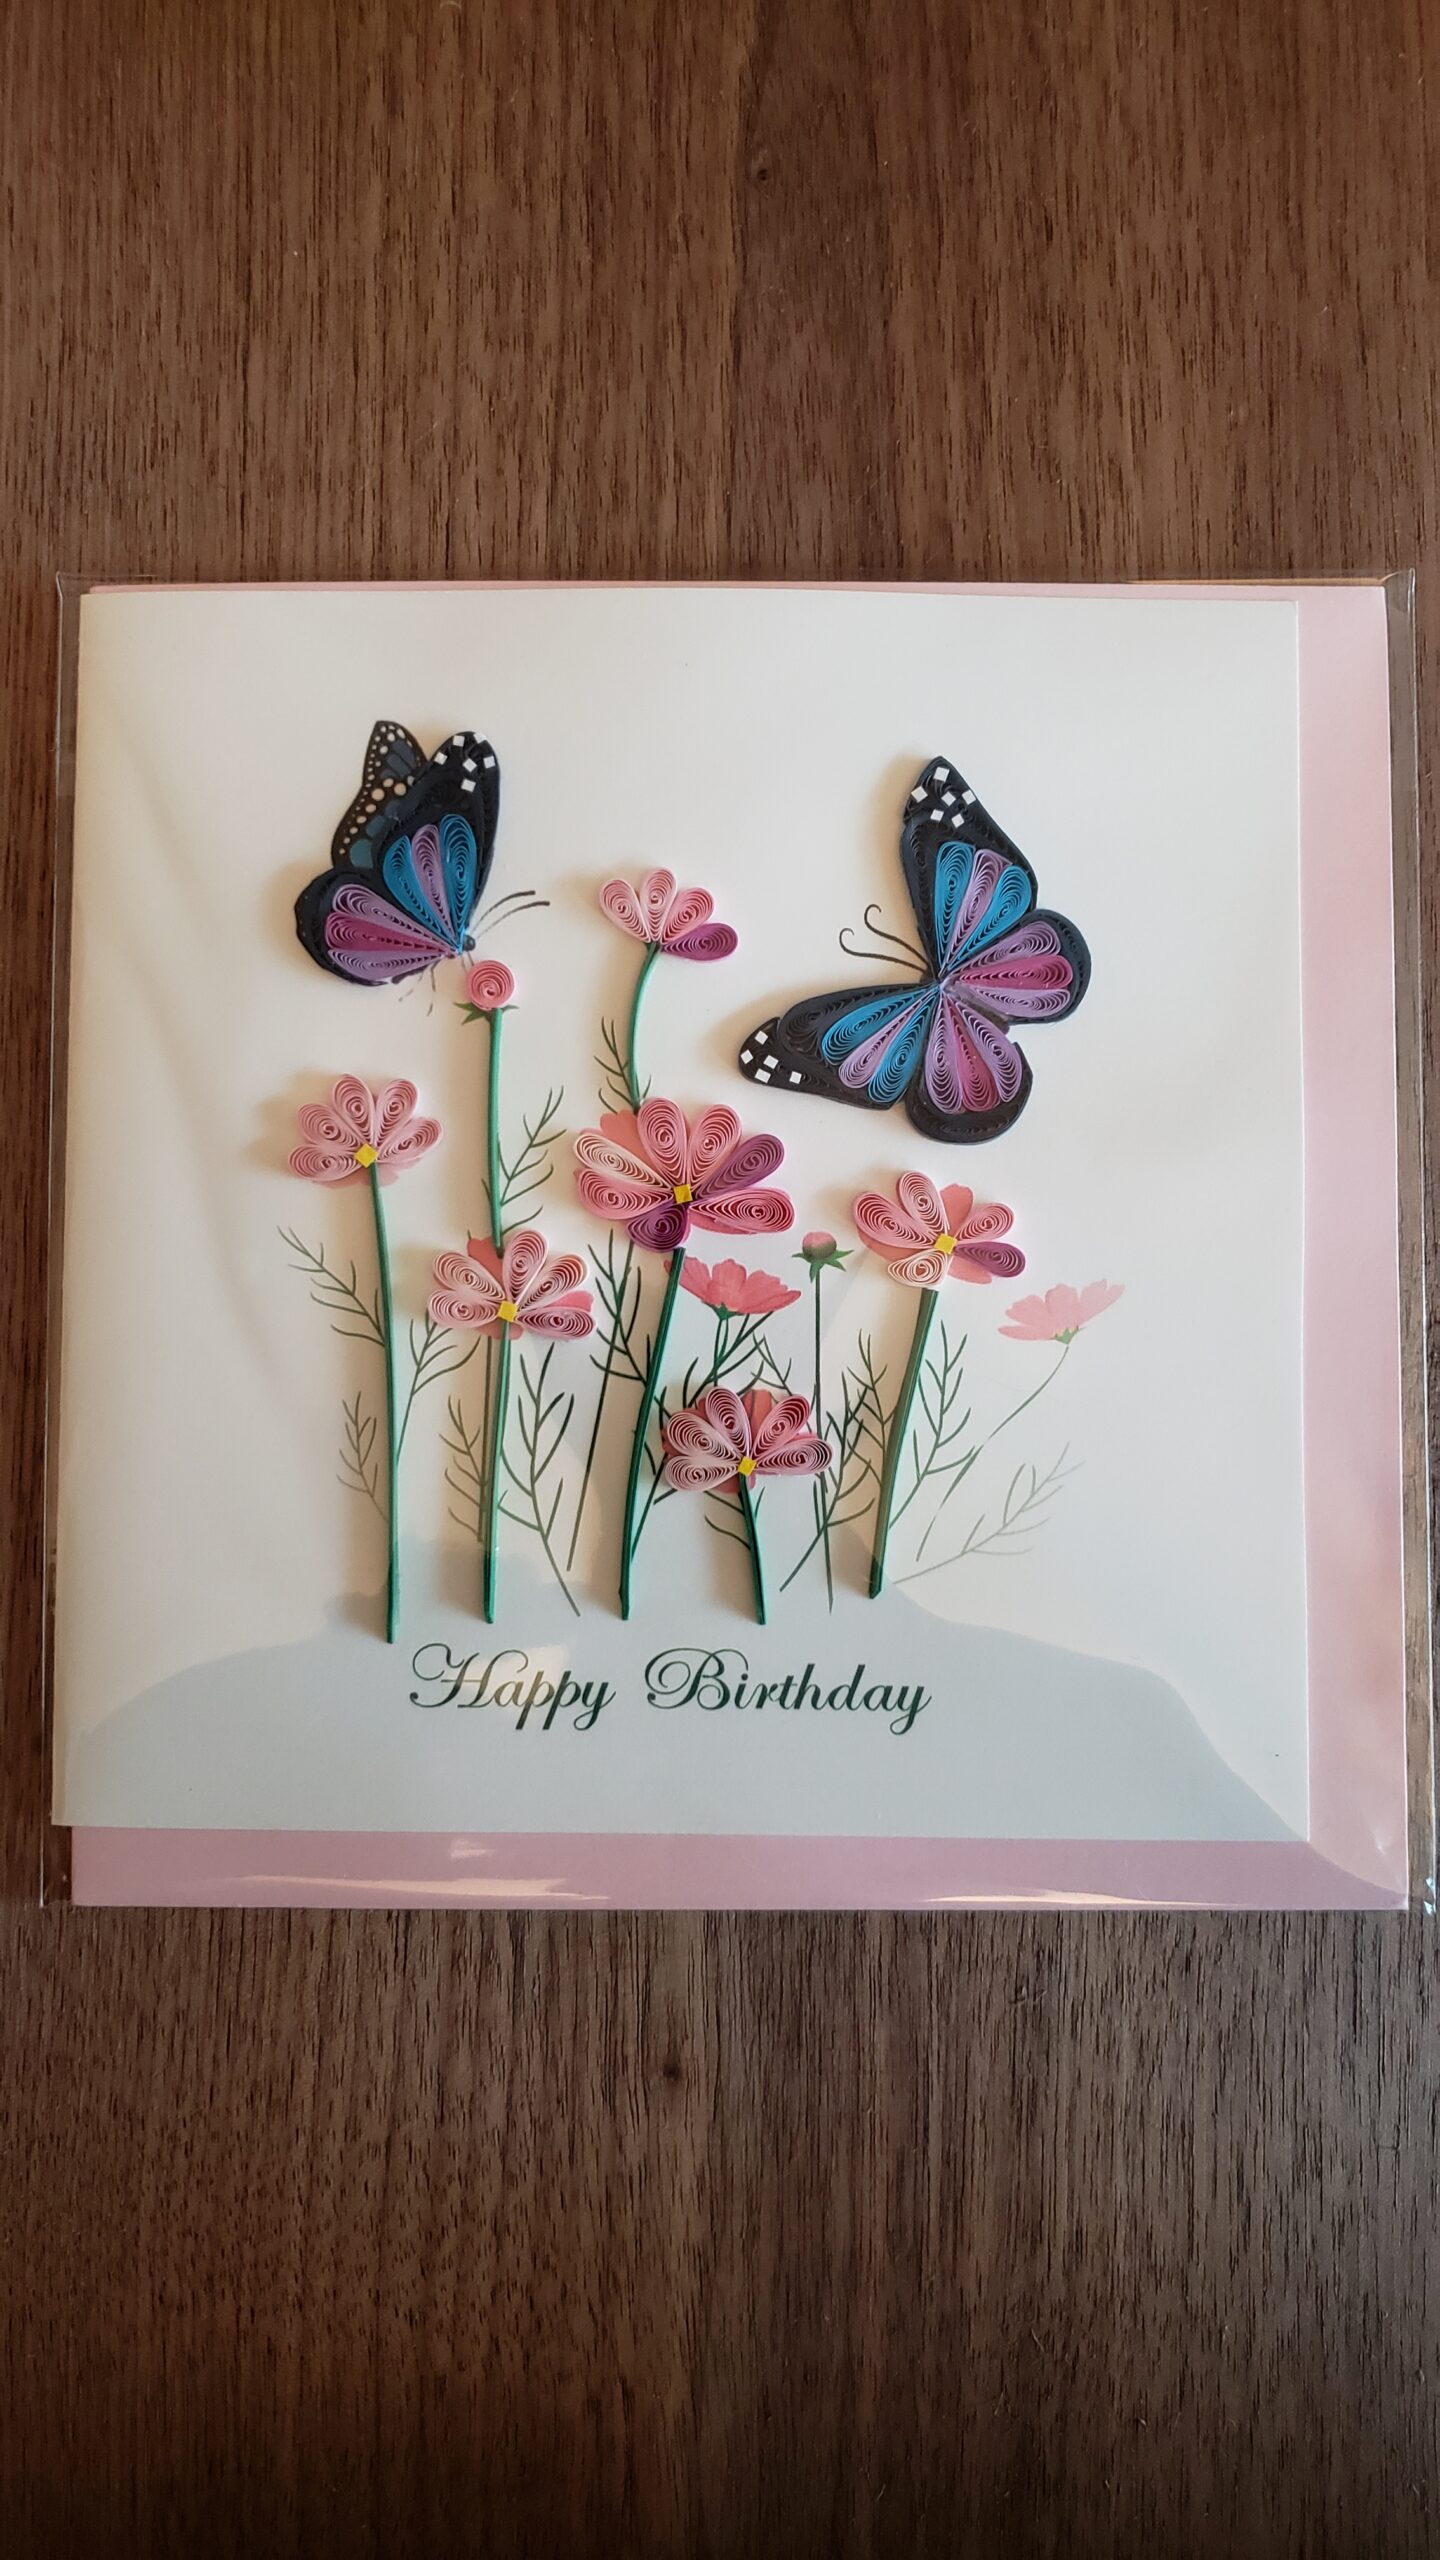 Birthday Flowers & Butterflies Card 6 in. x 6 in.